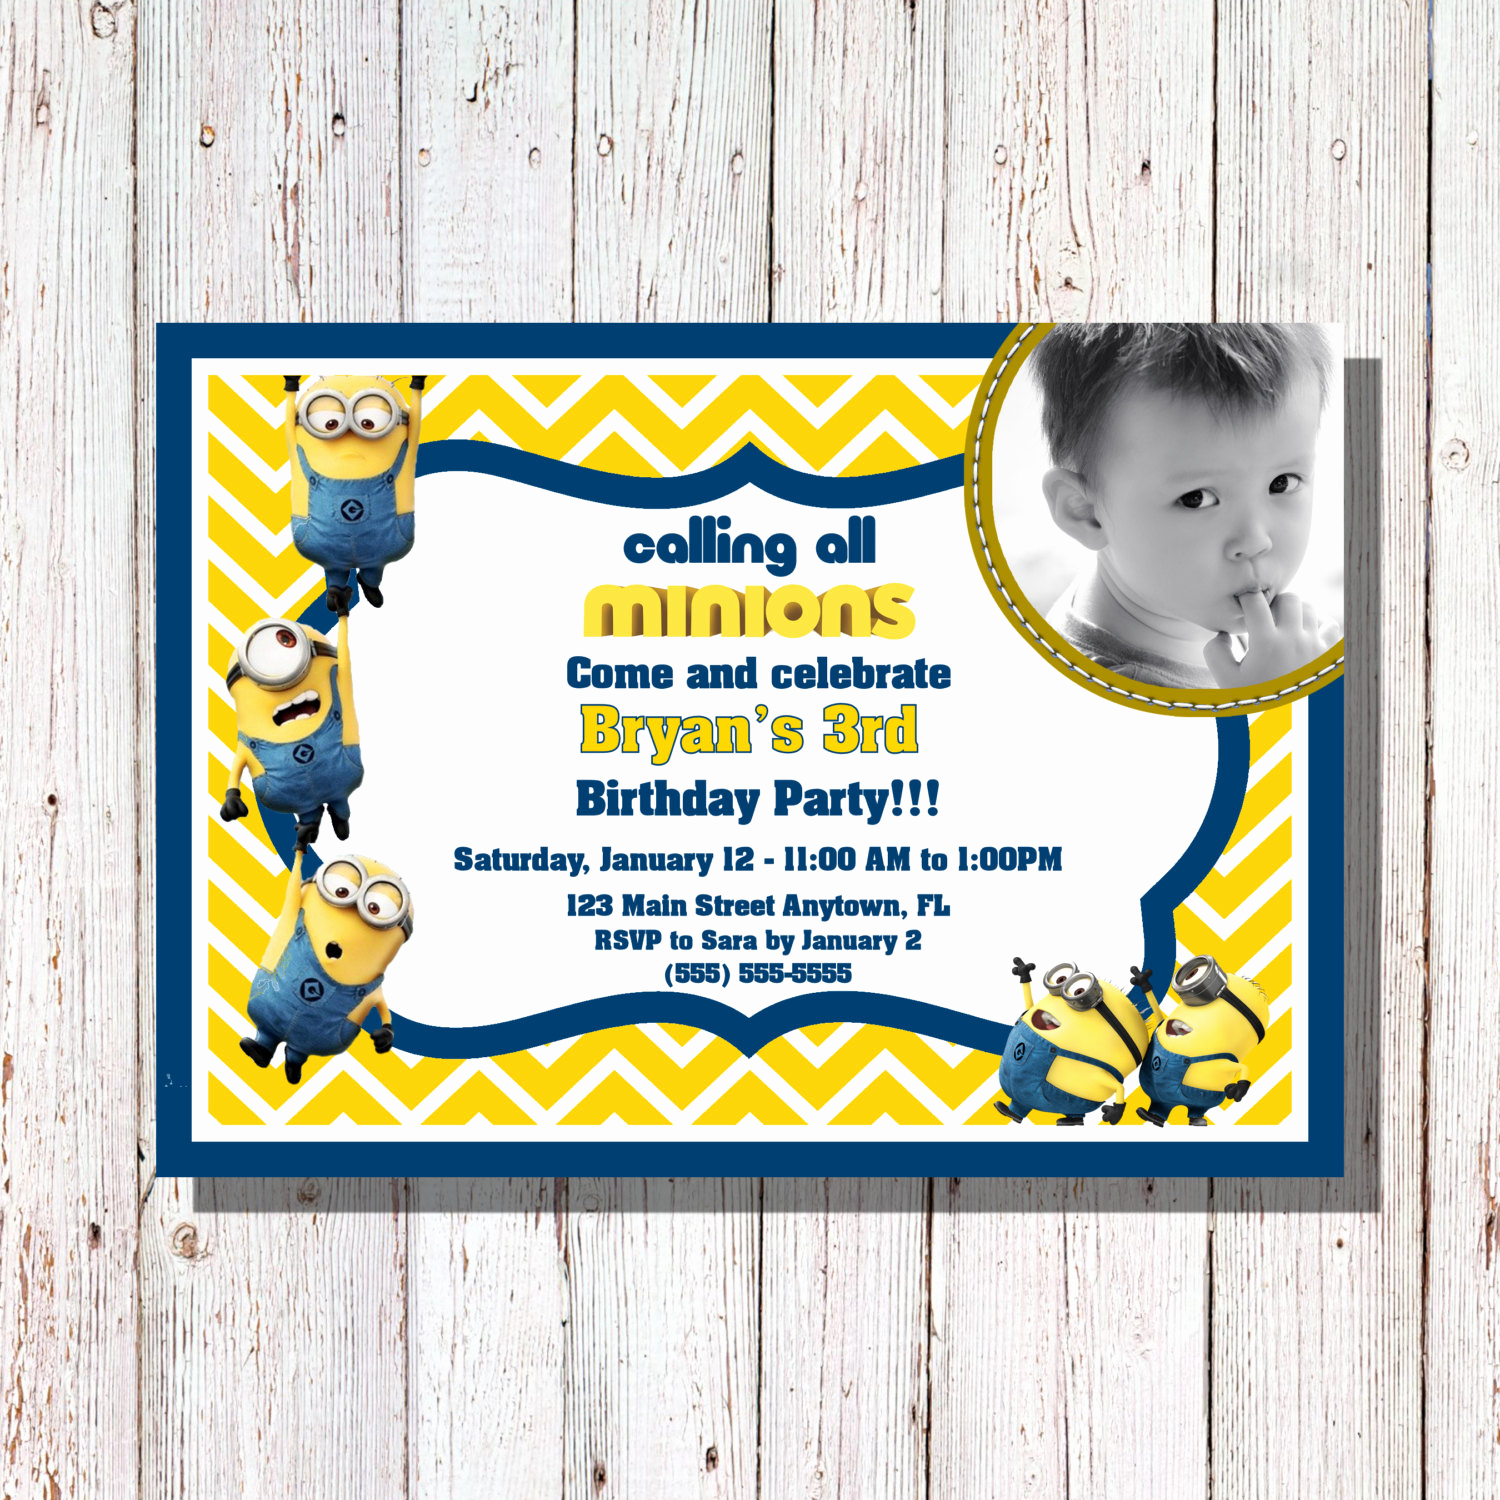 Minion Birthday Invitation Wording Elegant Minions Birthday Invitation Minions Party by Sharpecorner